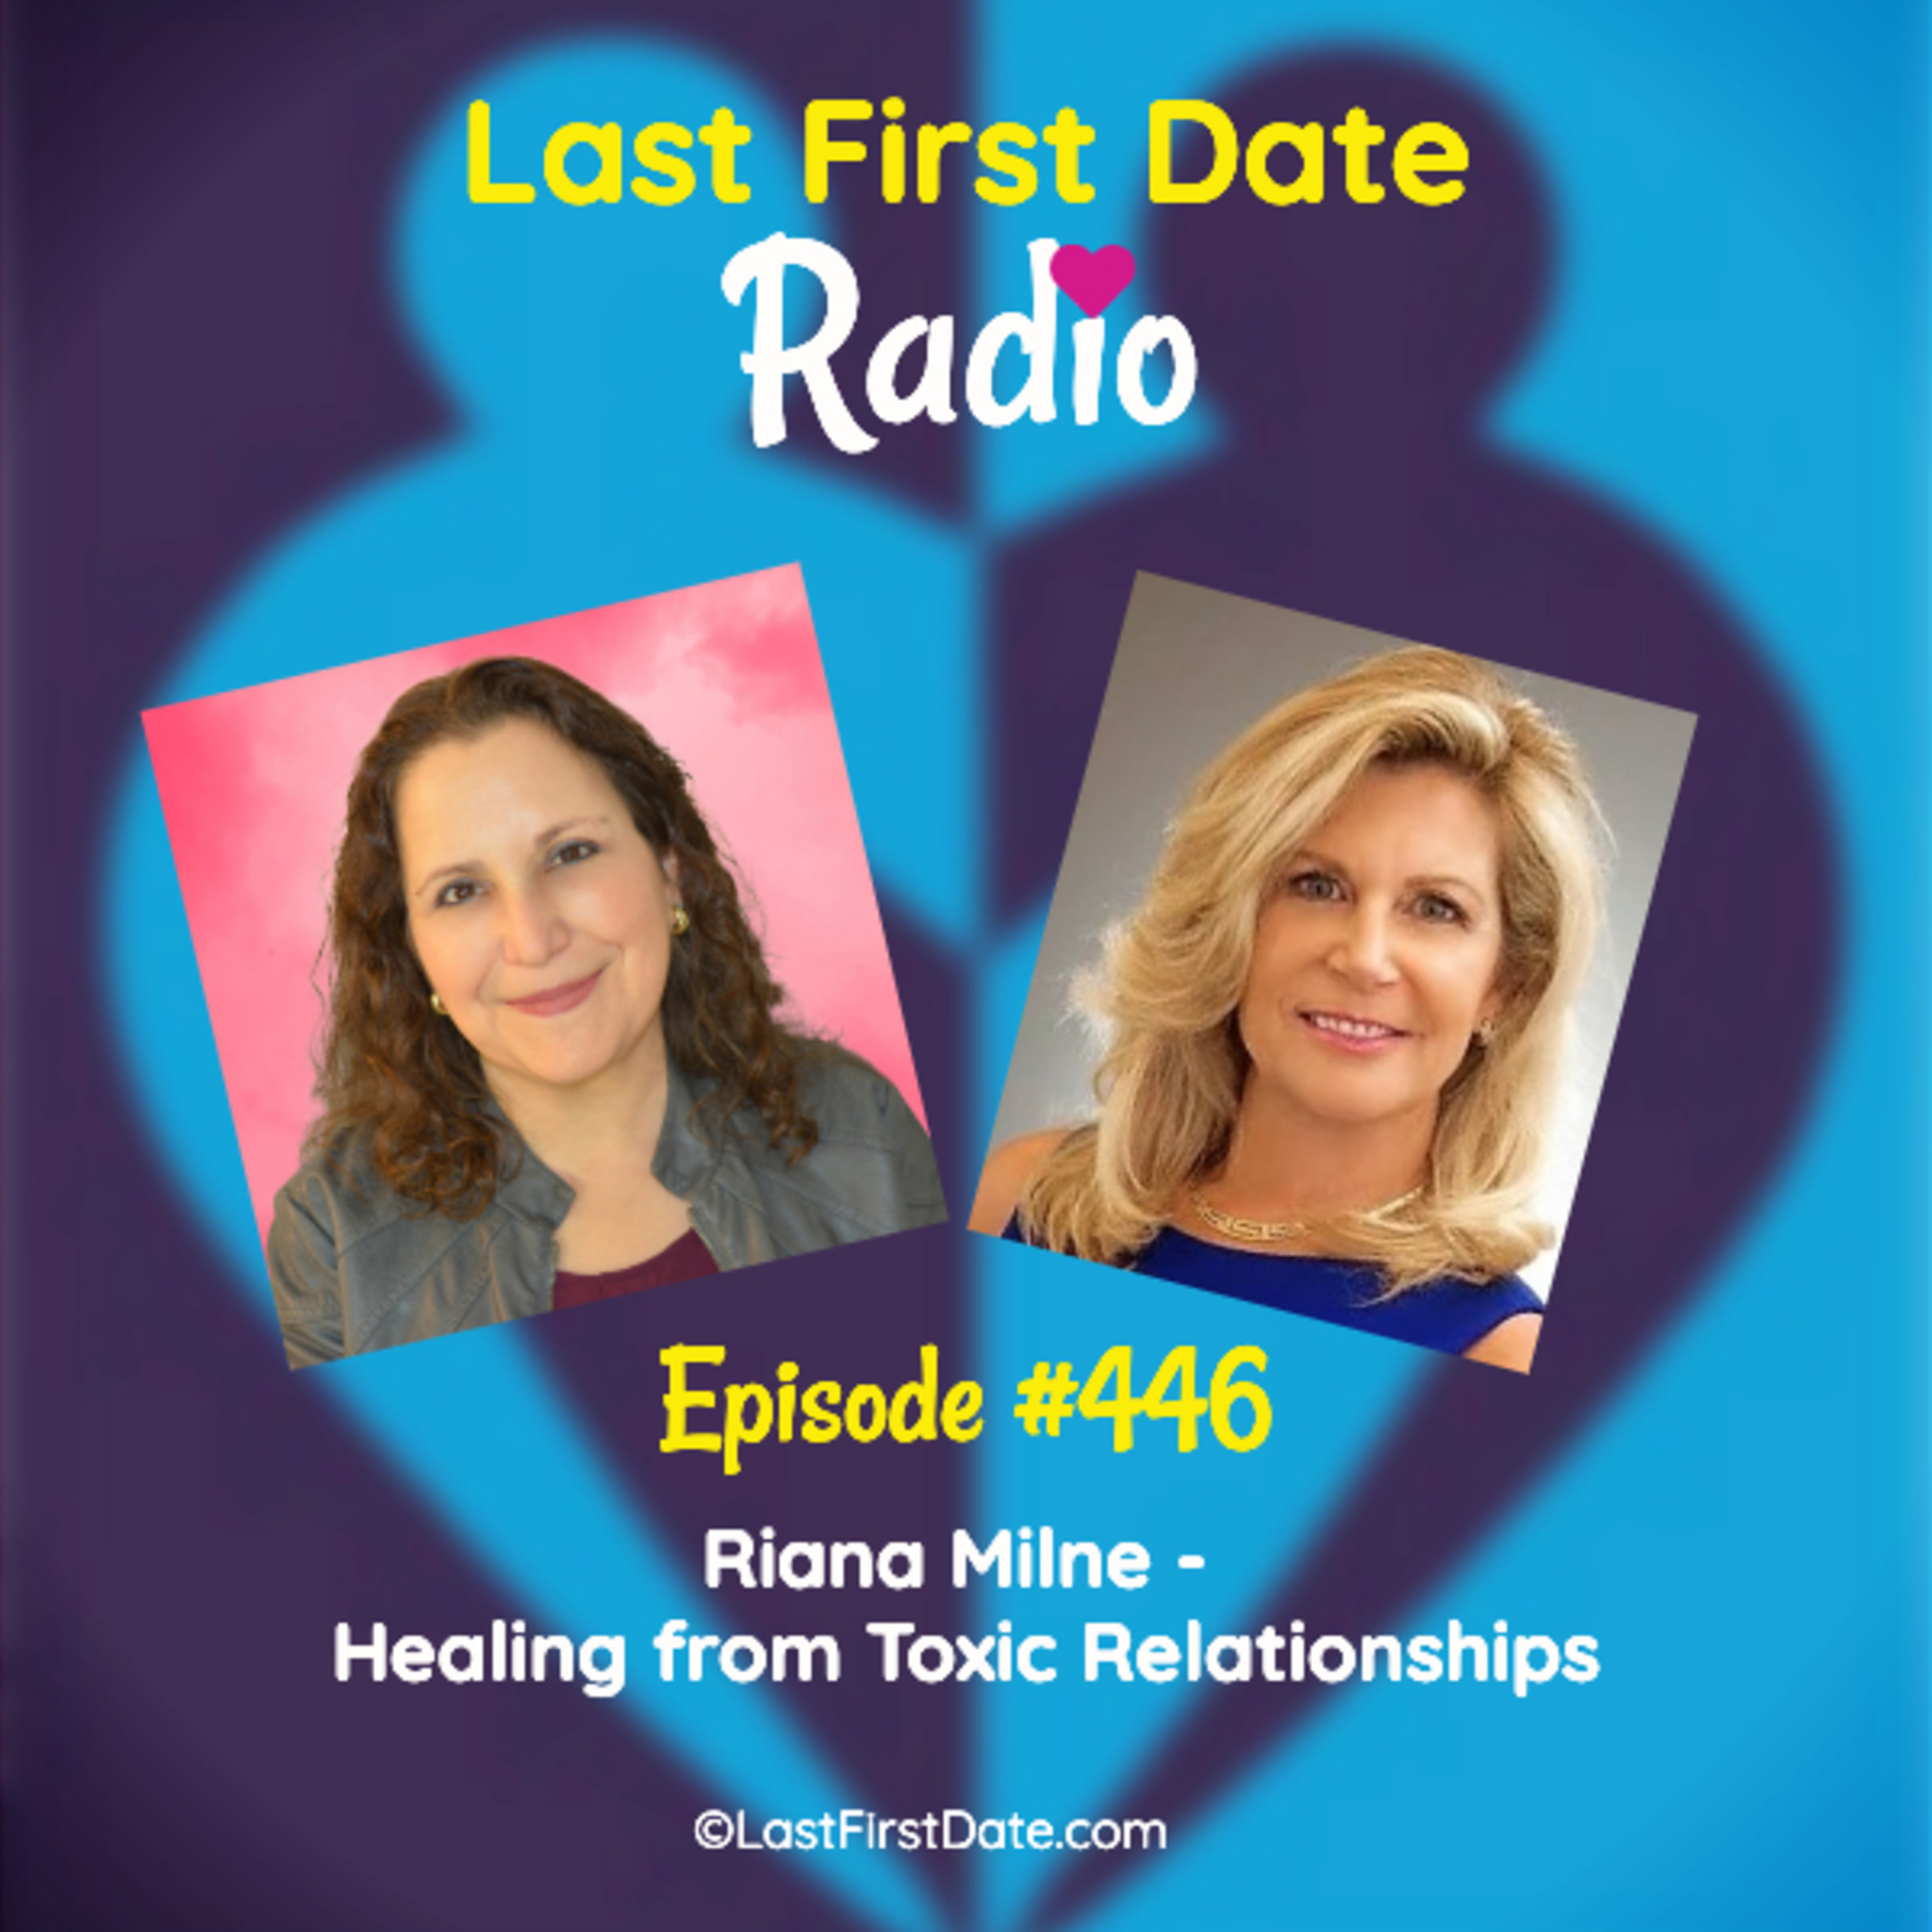 Last First Date Radio - EP 446: Riana Milne - Healing from Toxic Relationships